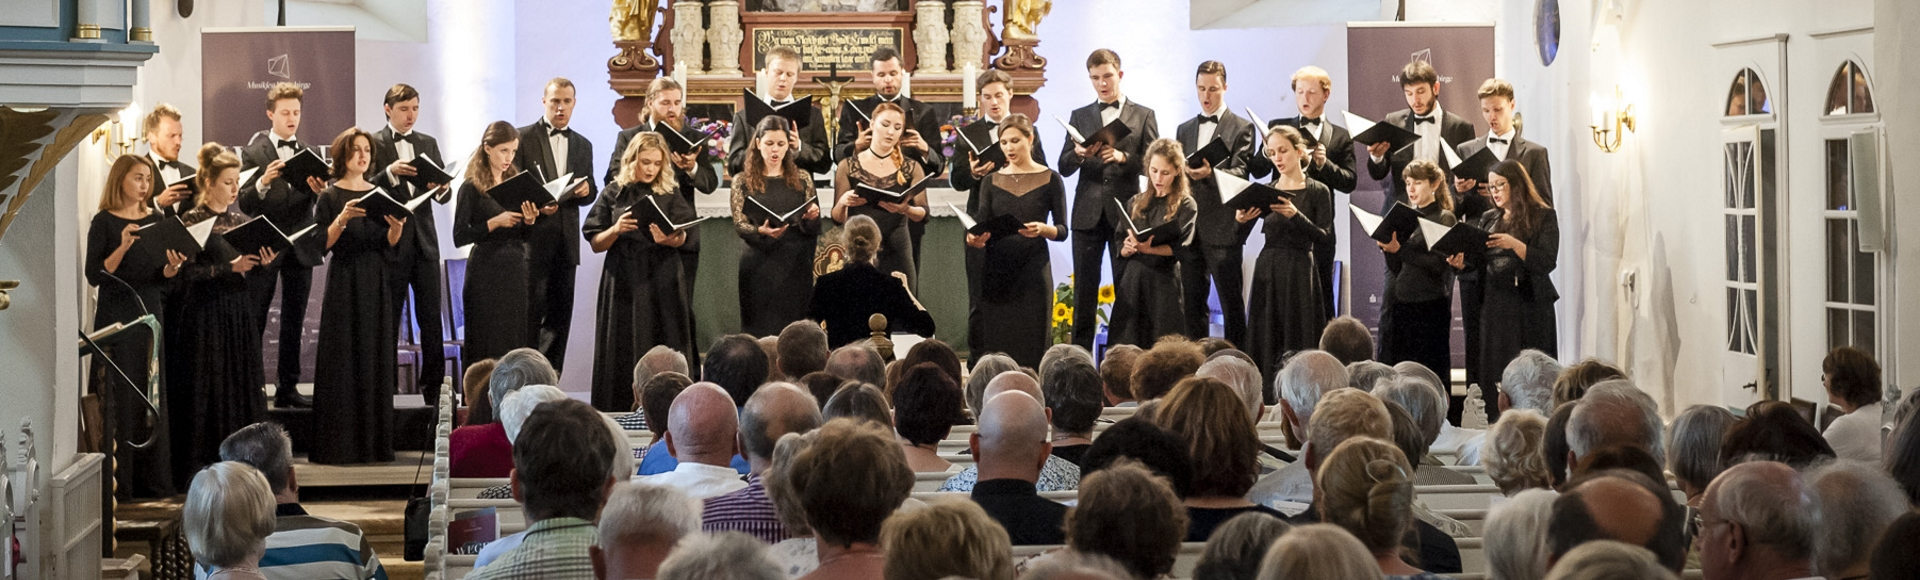 «One could hardly imagine more inspired, well-balanced and powerful choral singing».Karsten Blüthgen, «Sächsische Zeitung», on the concert of Intrada at the Dresden Music Festival